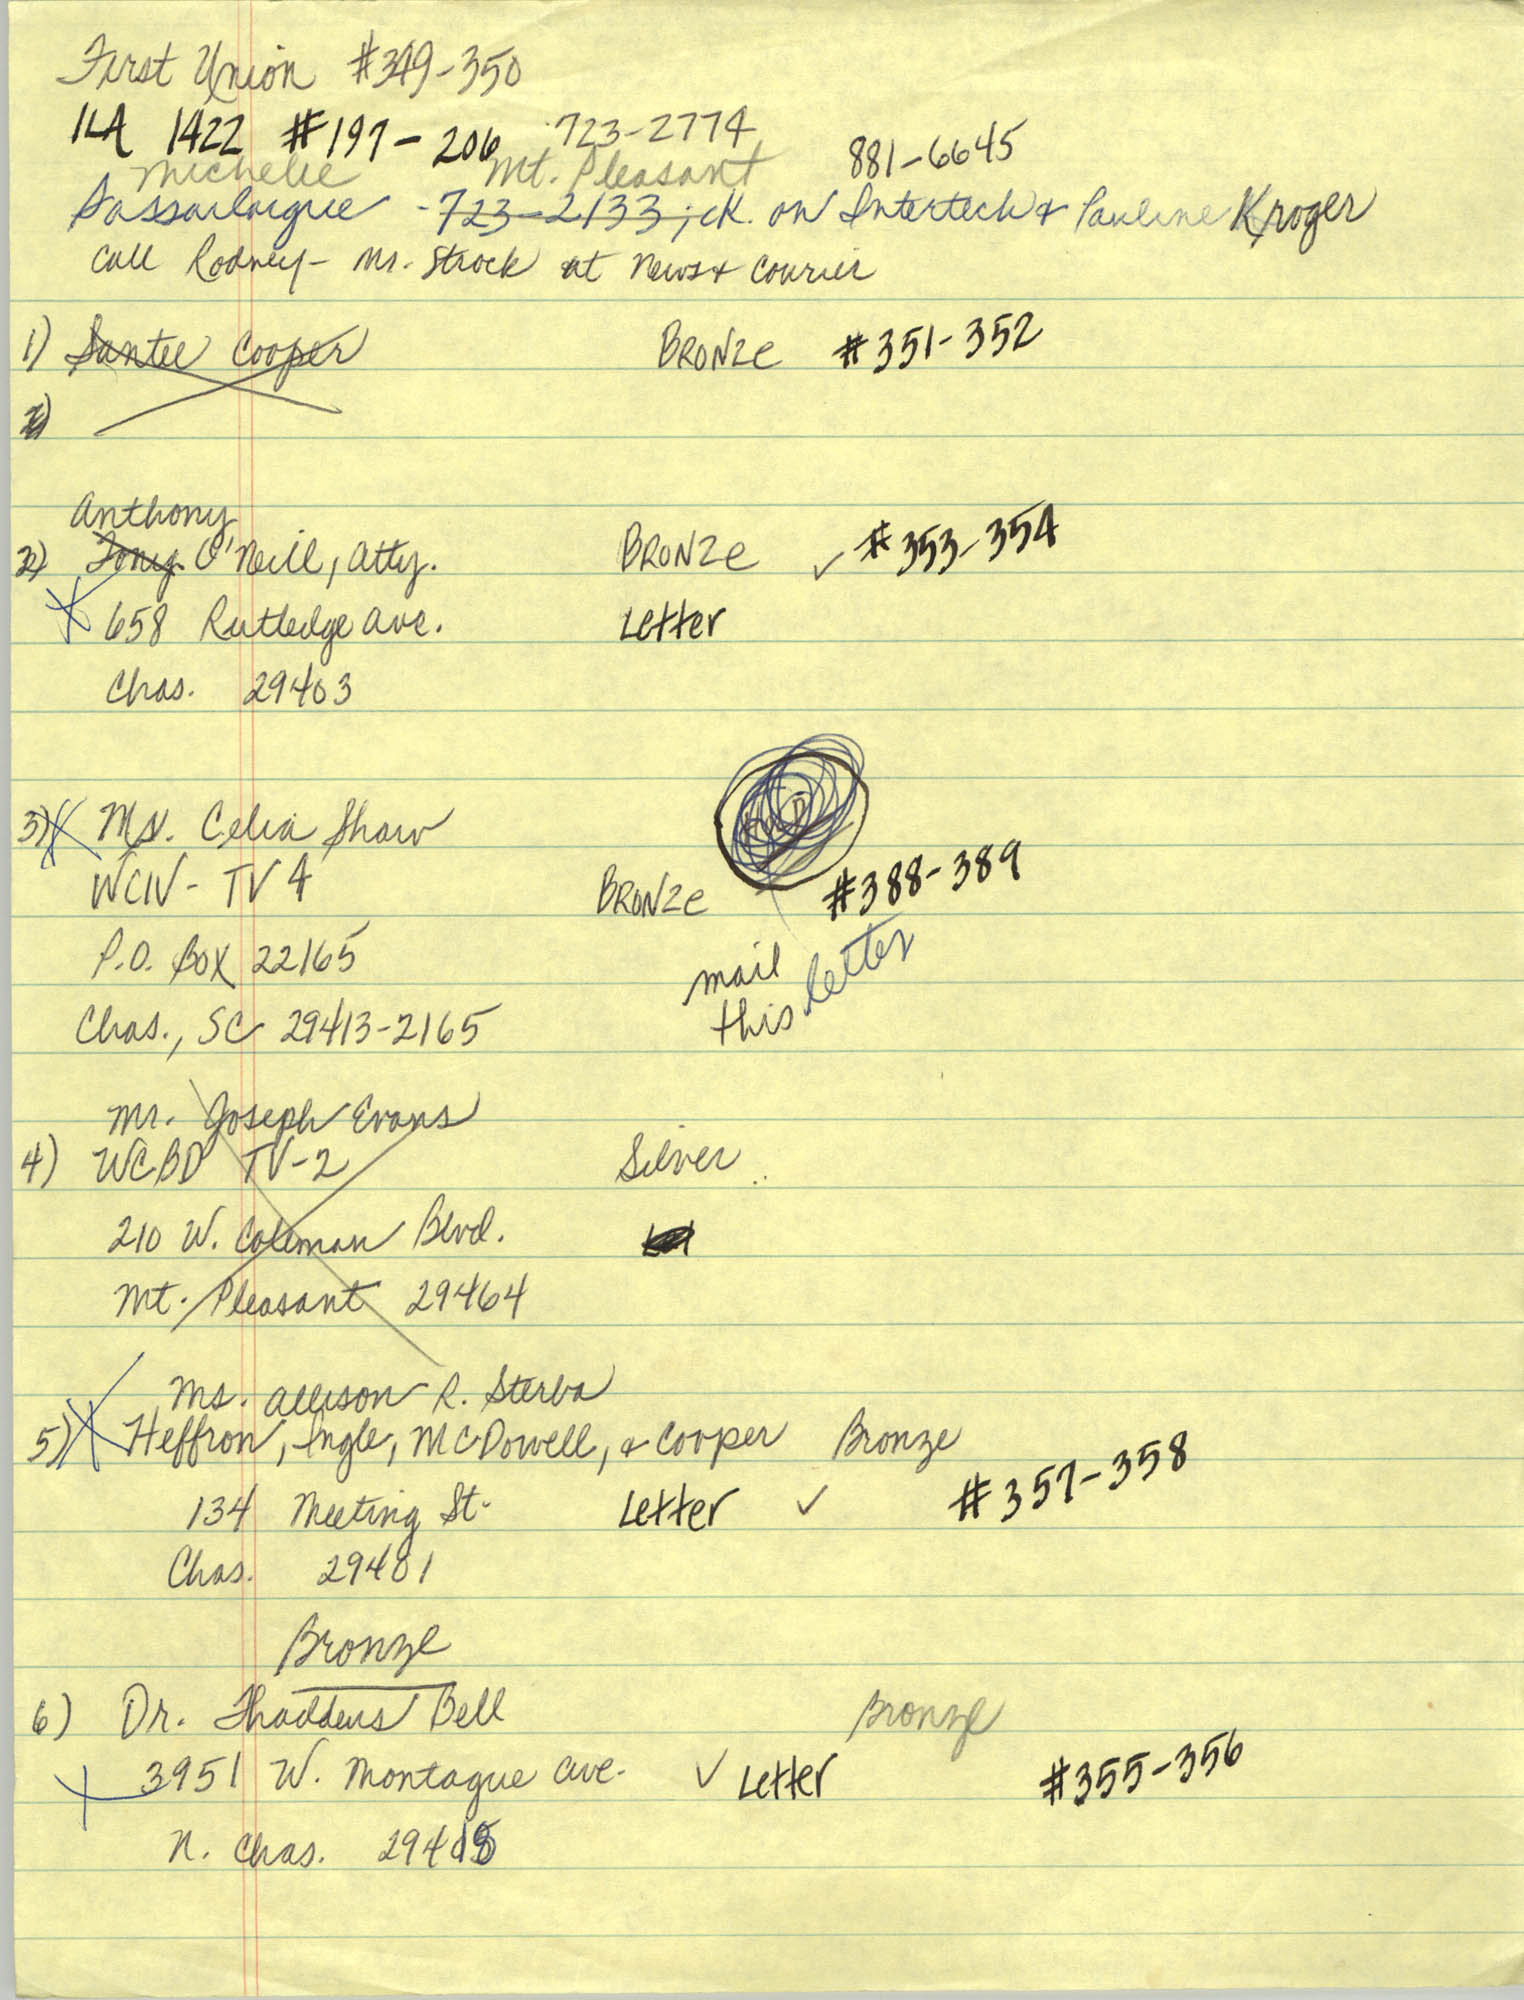 Handwritten Addresses for Tickets, Page 6